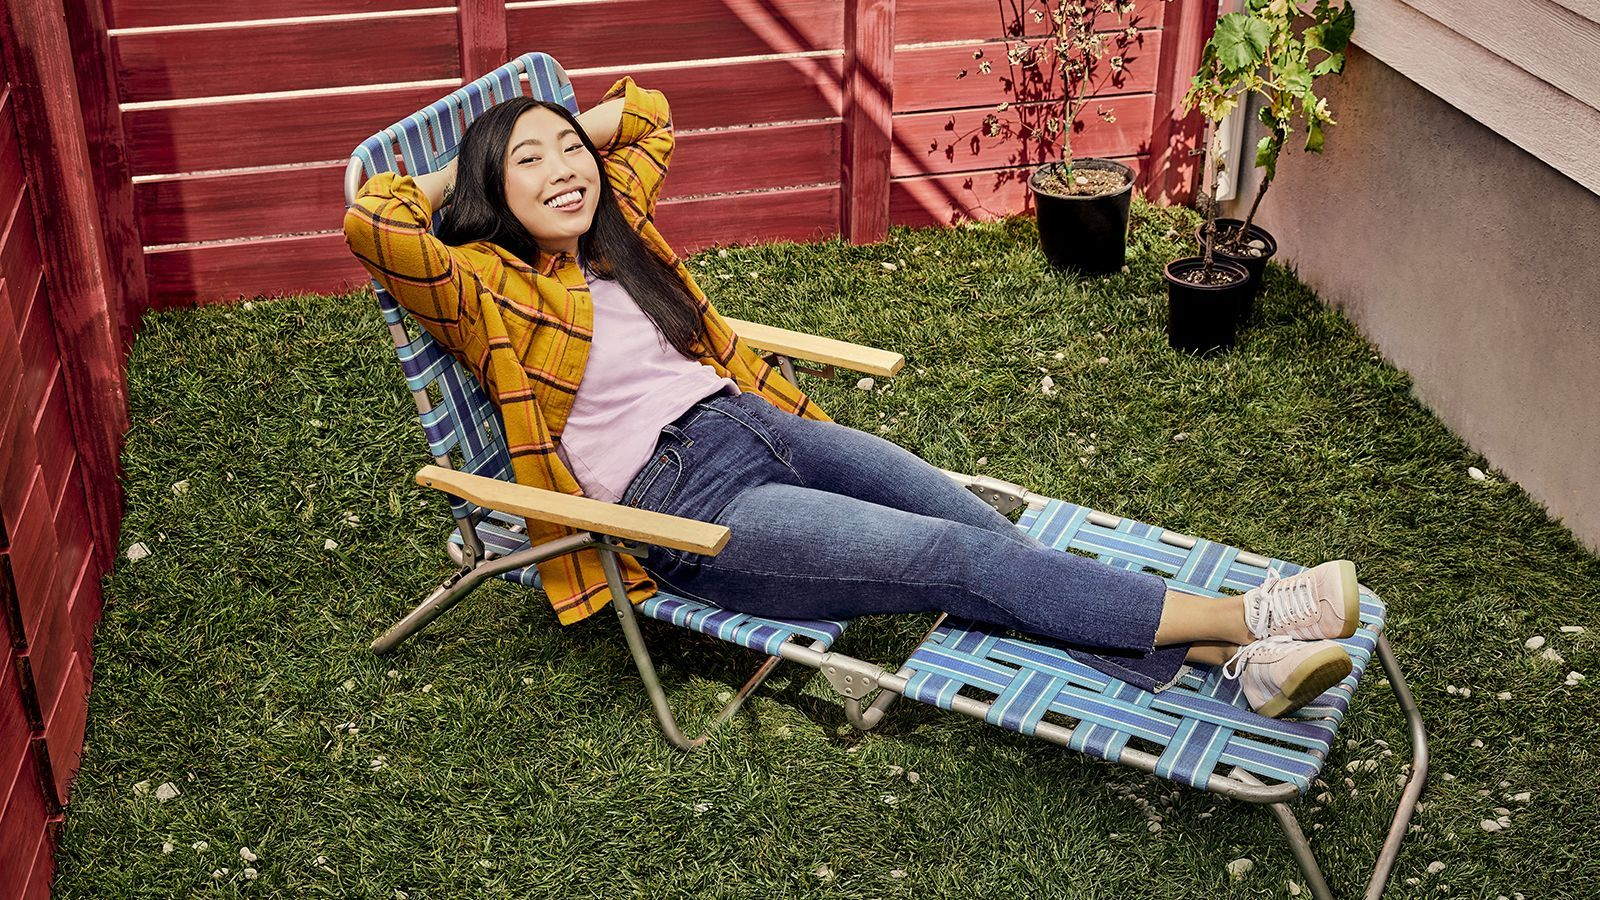 Awkwafina is Nora From Queens: A Portrait of Millennial Ennui